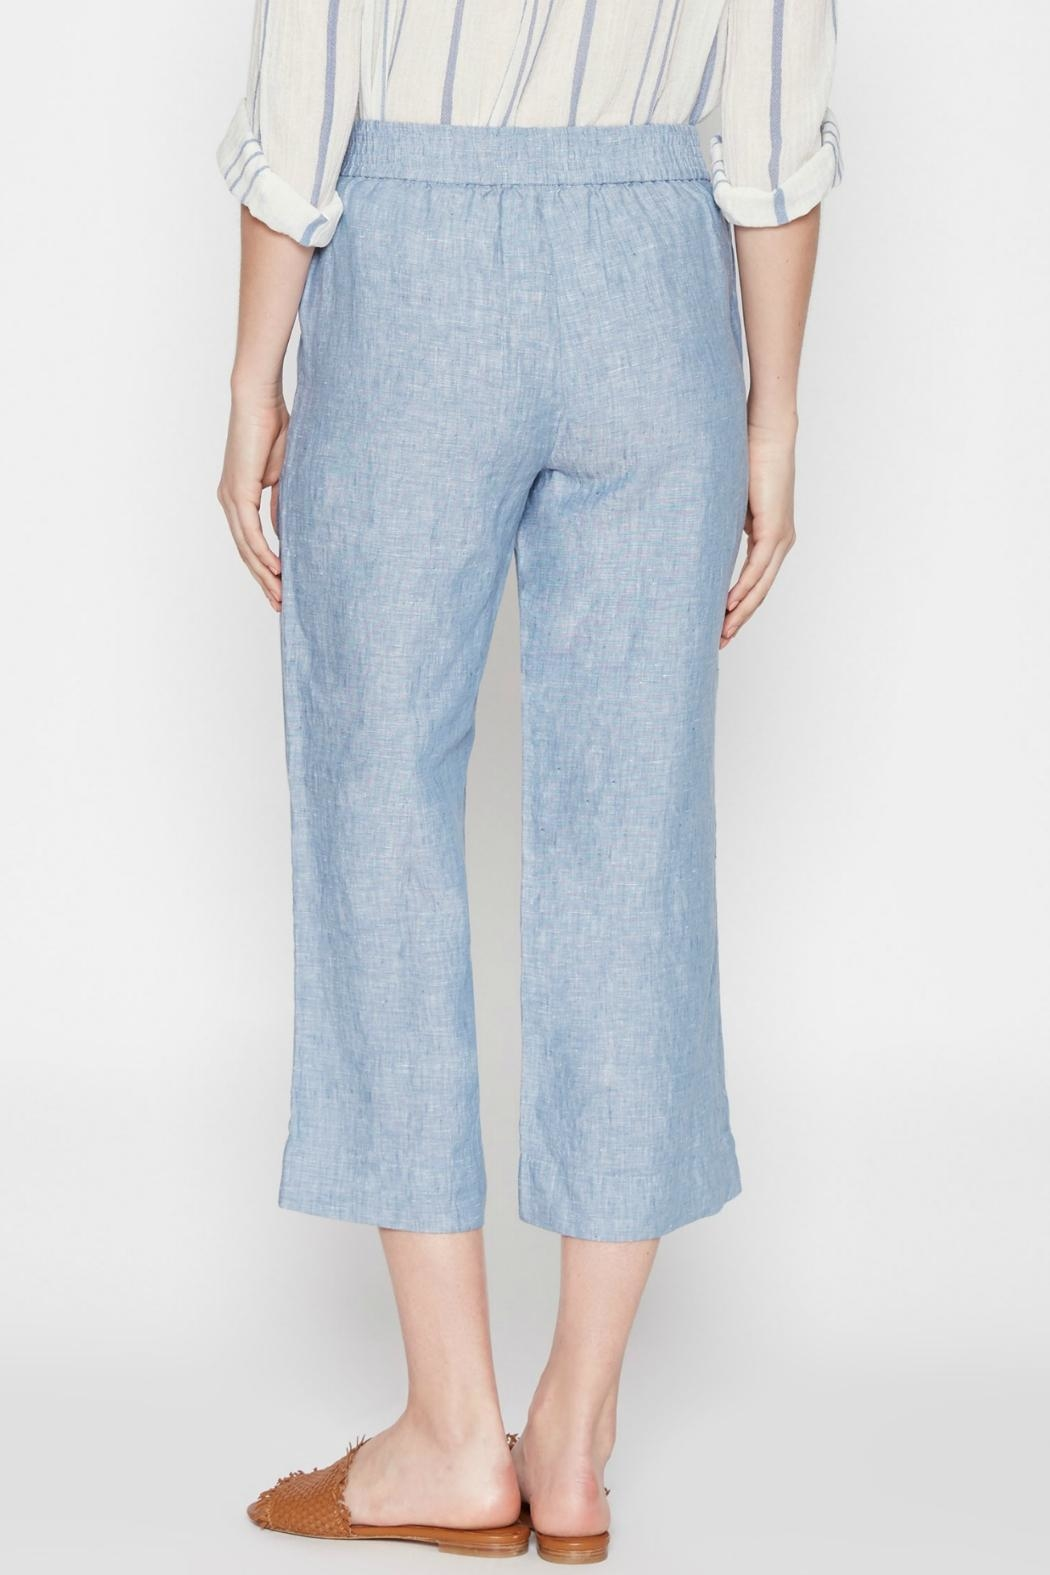 Joie Cropped Denim Blue Pants - Front Full Image